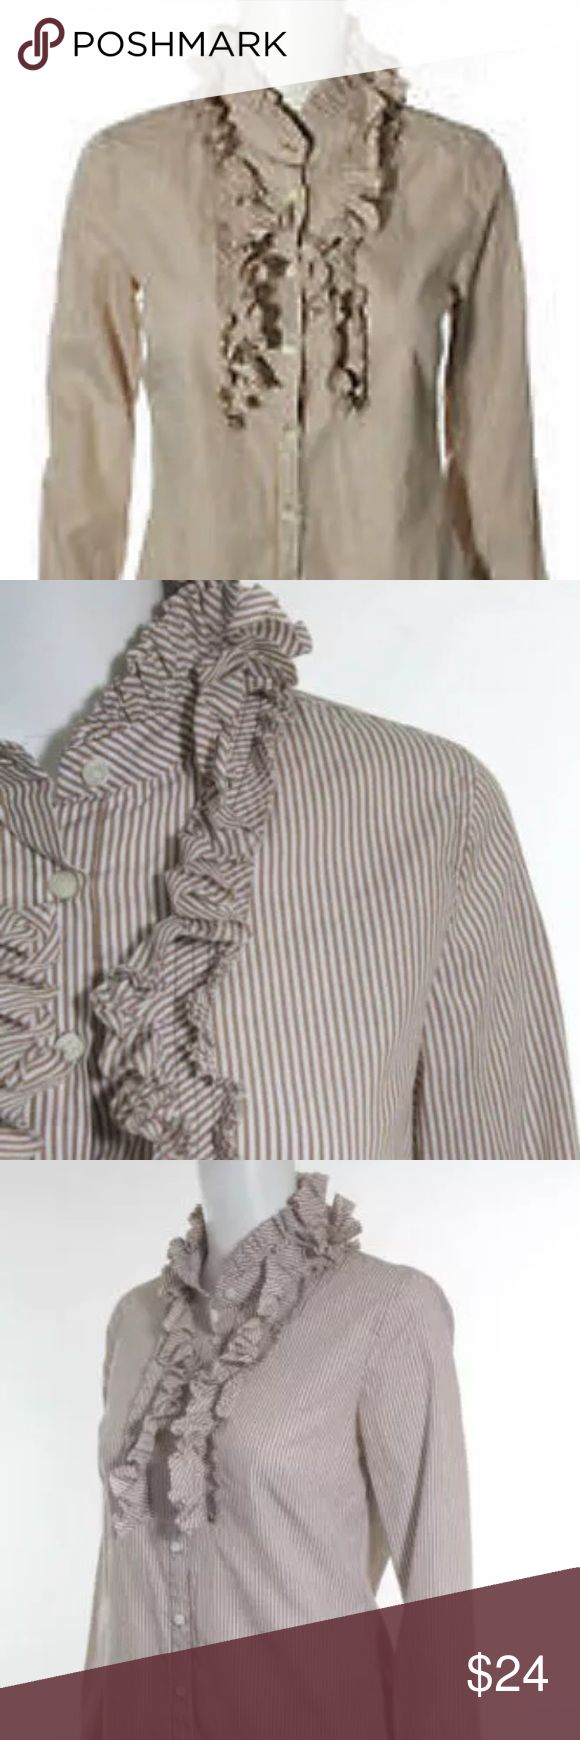 """J.Crew Brown White Stripe Cotton L/S Blouse 2 Brown and White Stripe Confetti Ruffle Button Down Shirt Size women's 2 Bust is about 33.5"""" Natural waist 36"""" Neckline to hem is about 24"""" Originally $89.50 Smoke and animal free      Check out this review from collegecandy.com """"Ladies, this stripe confetti ruffle shirt from J. Crew is the current #1 on my lust list.  It's a departure from the standard white or blue button-down oxford we're all used to wearing when we want to look polished and…"""